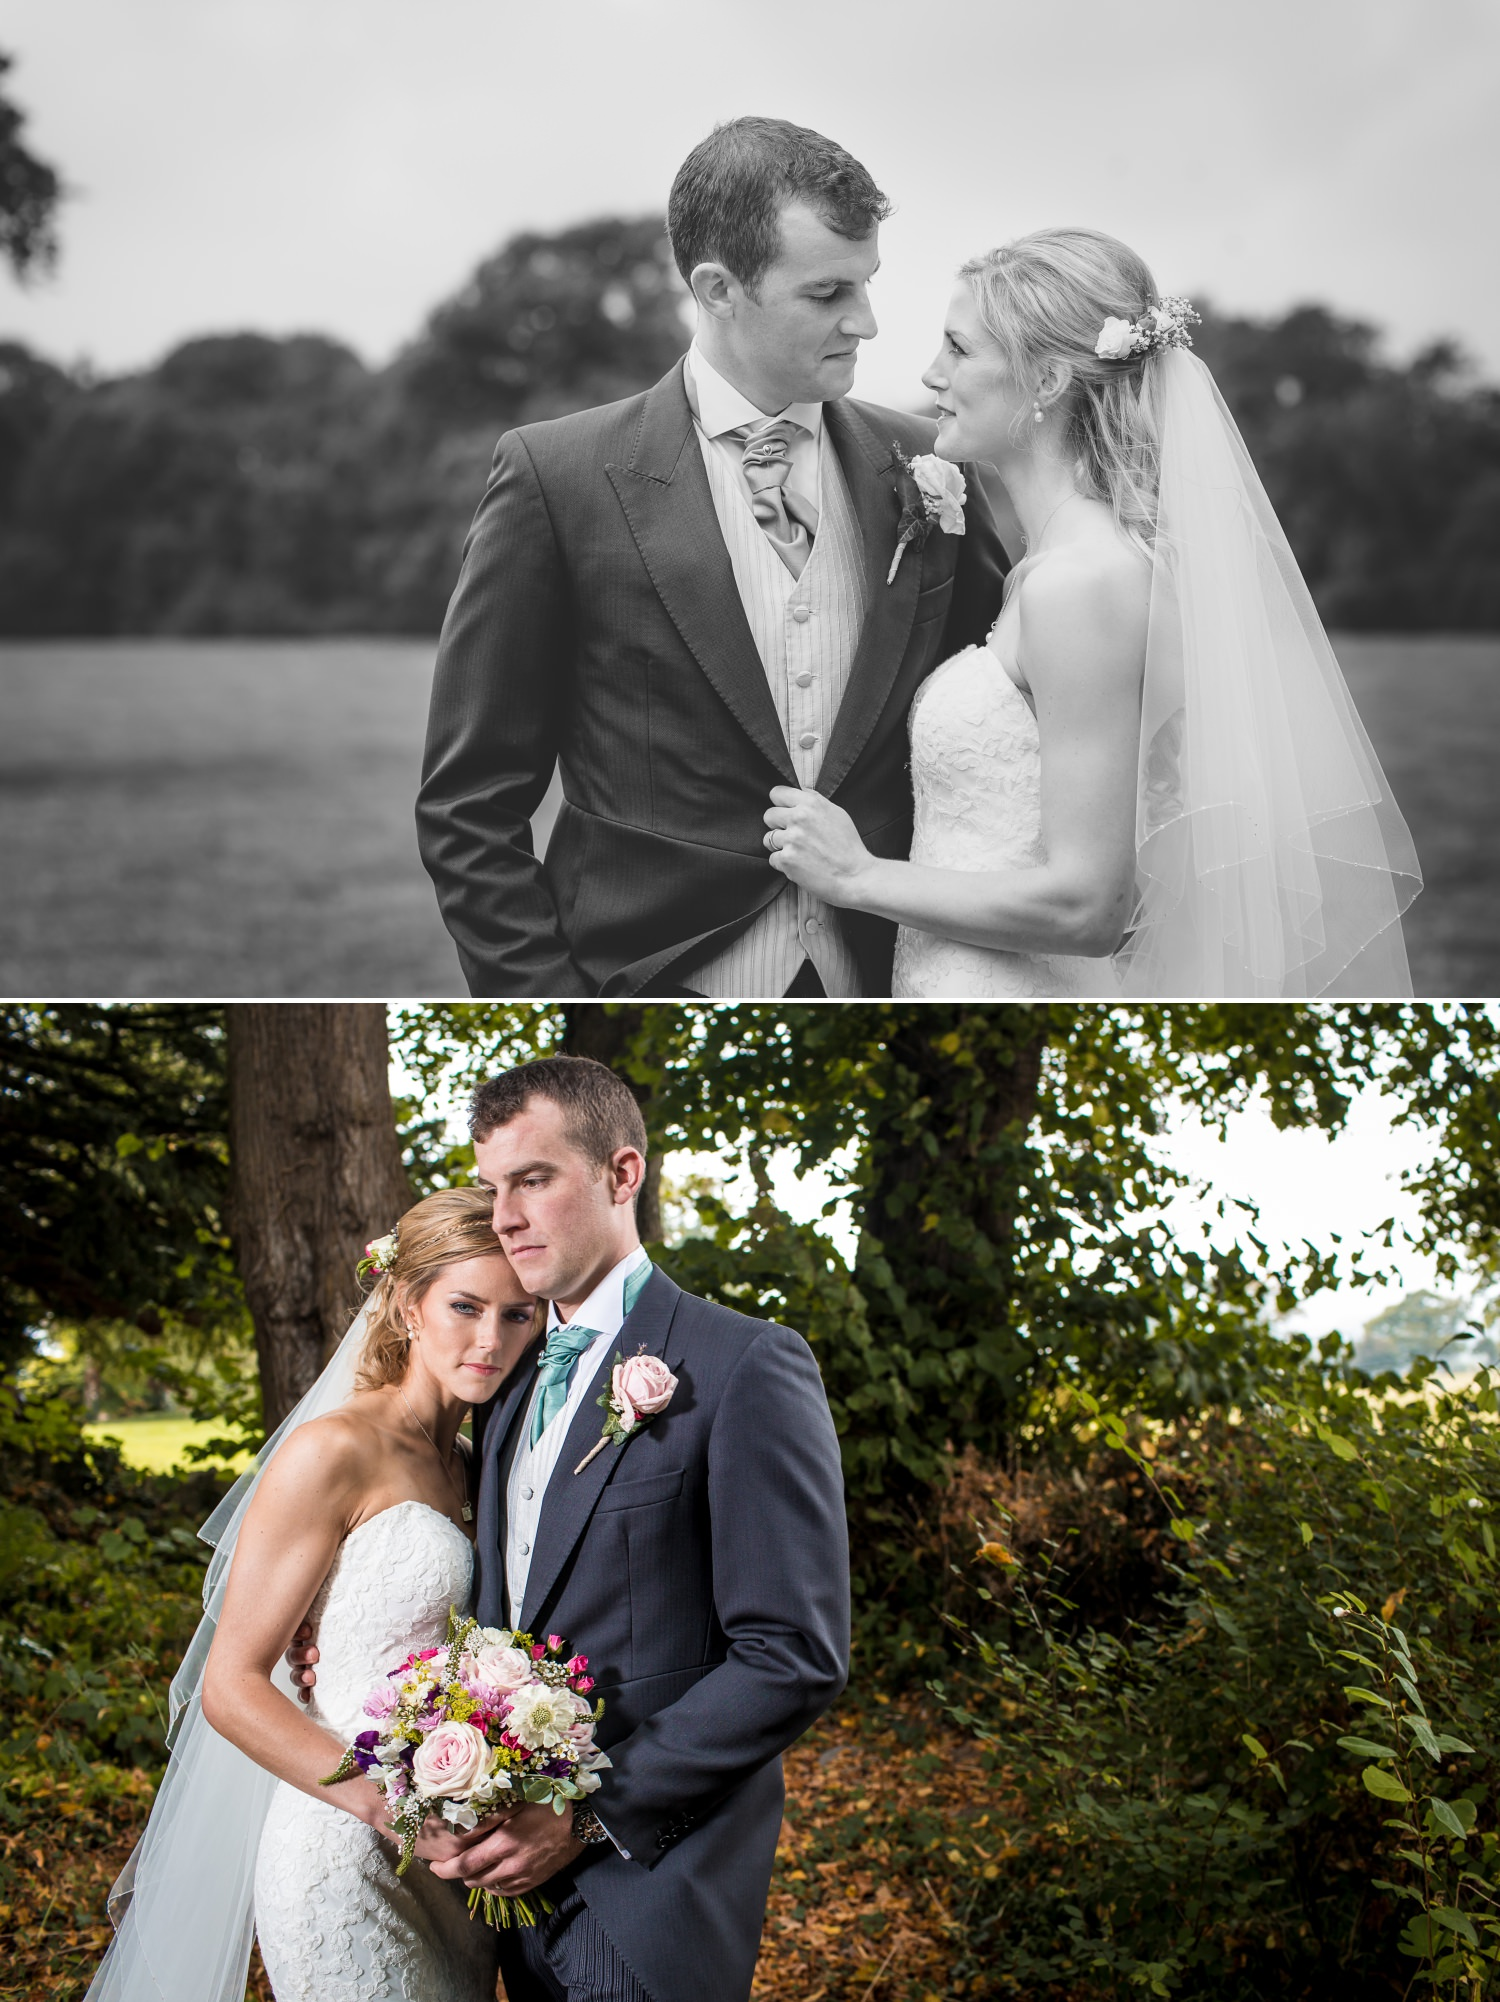 Pentre Mawr Country House Wedding Photographer, North Wales, couple portraits